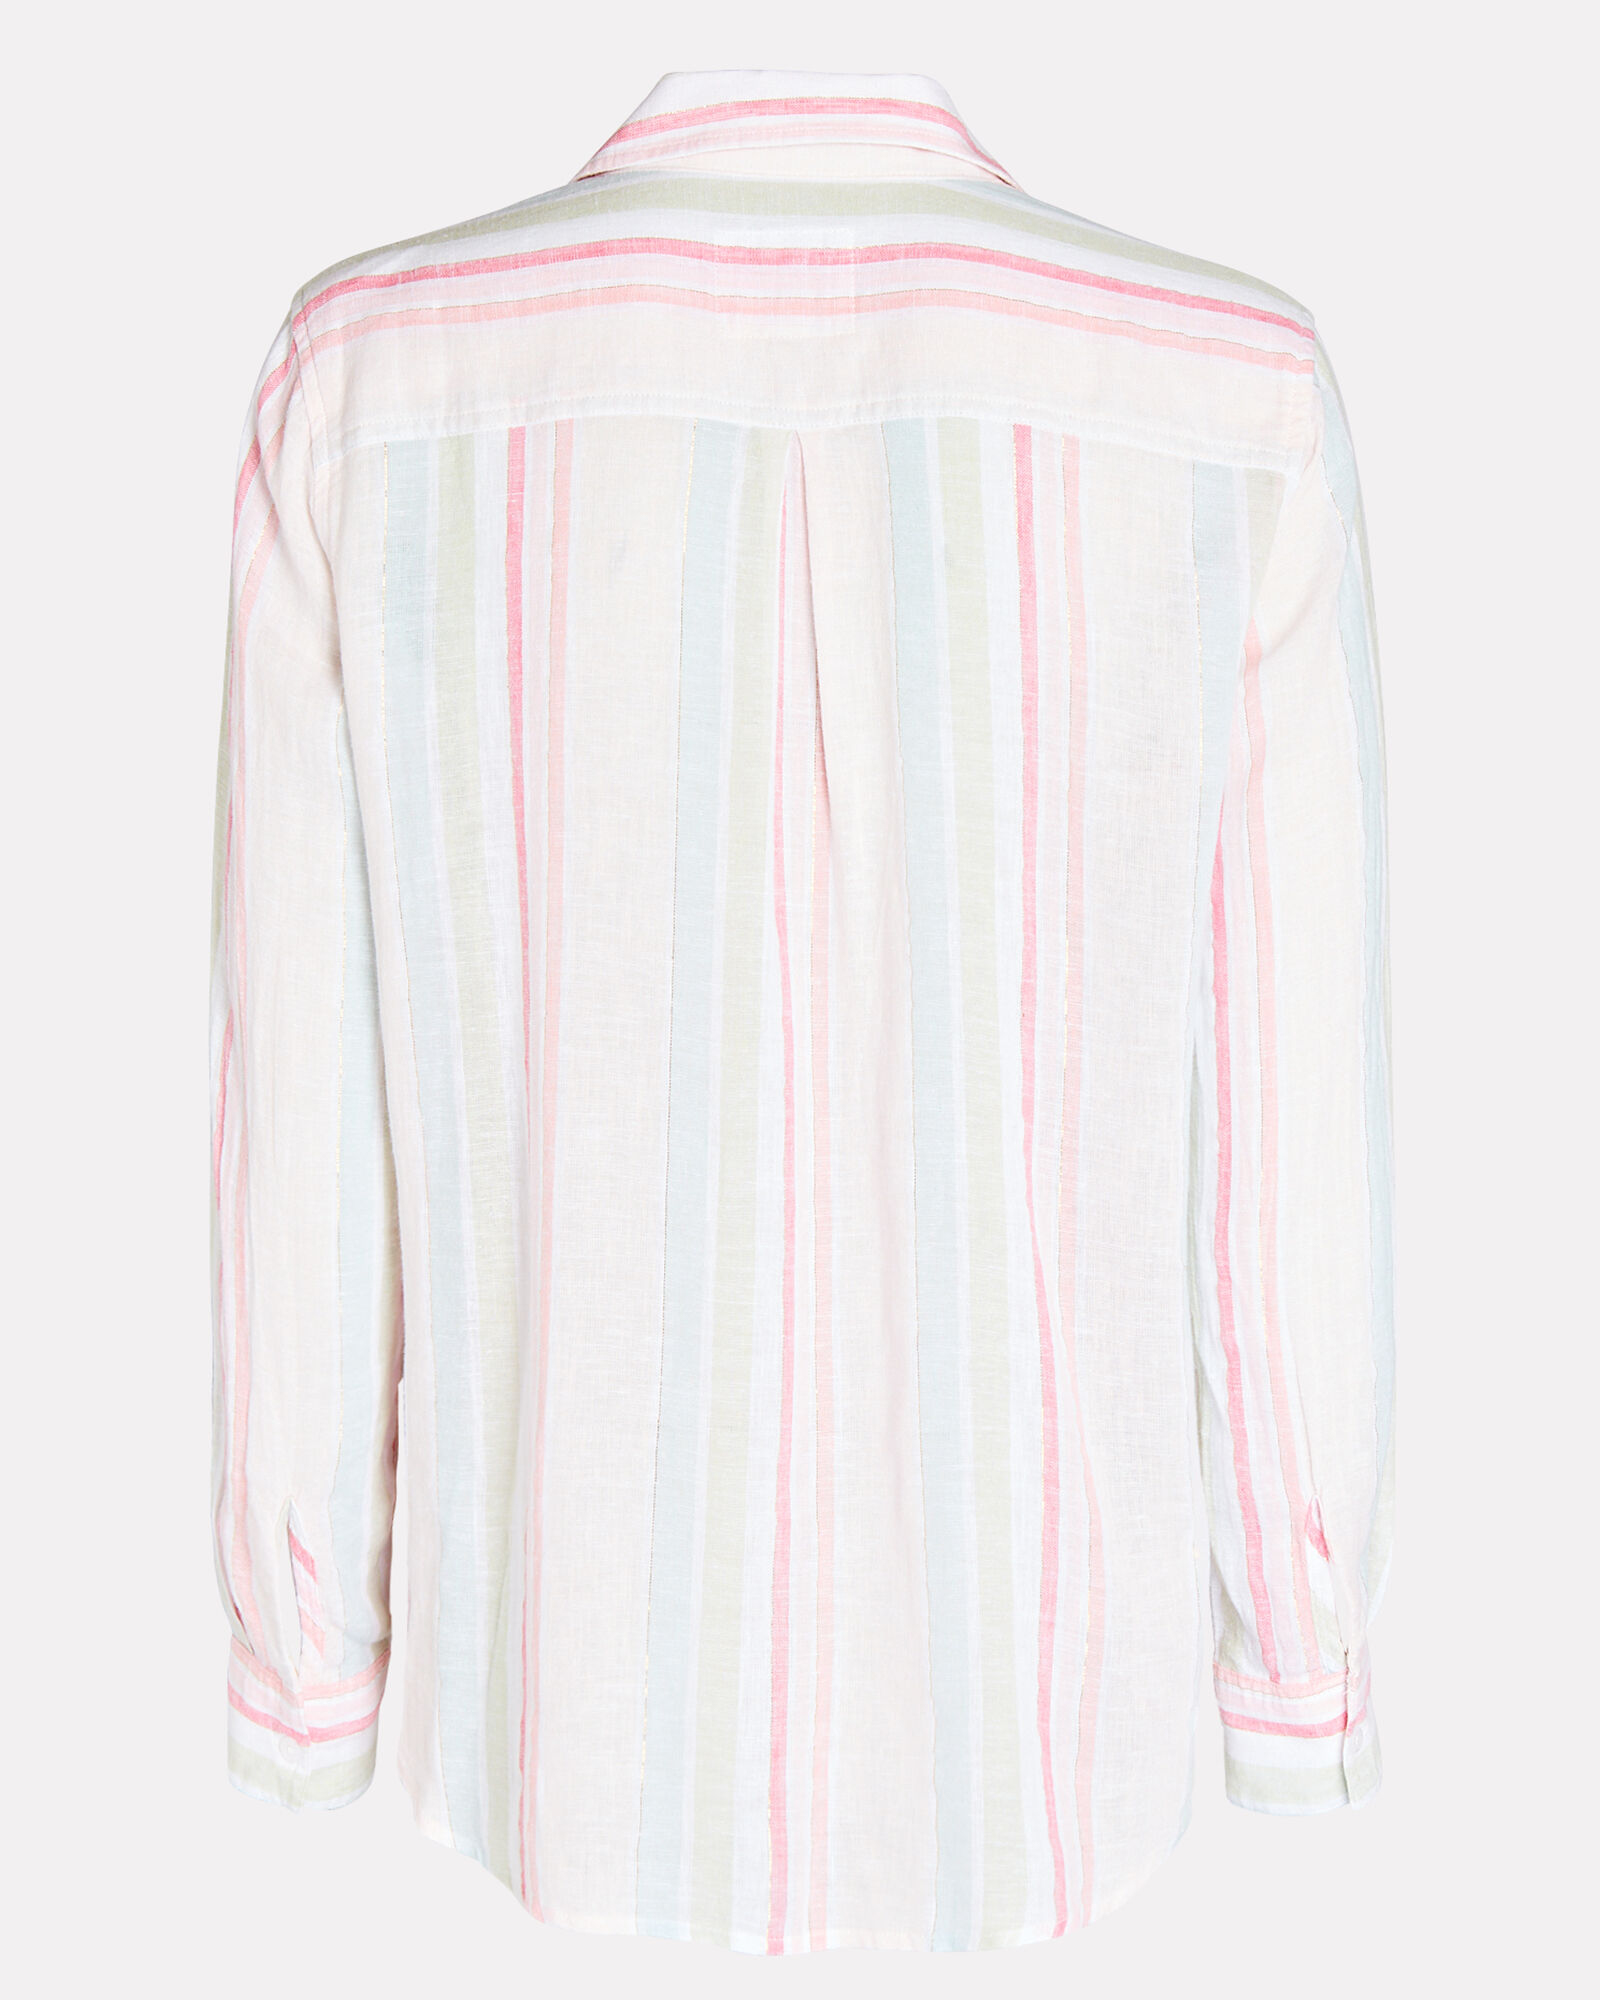 Charli Matera Stripe Button Down, MULTI, hi-res